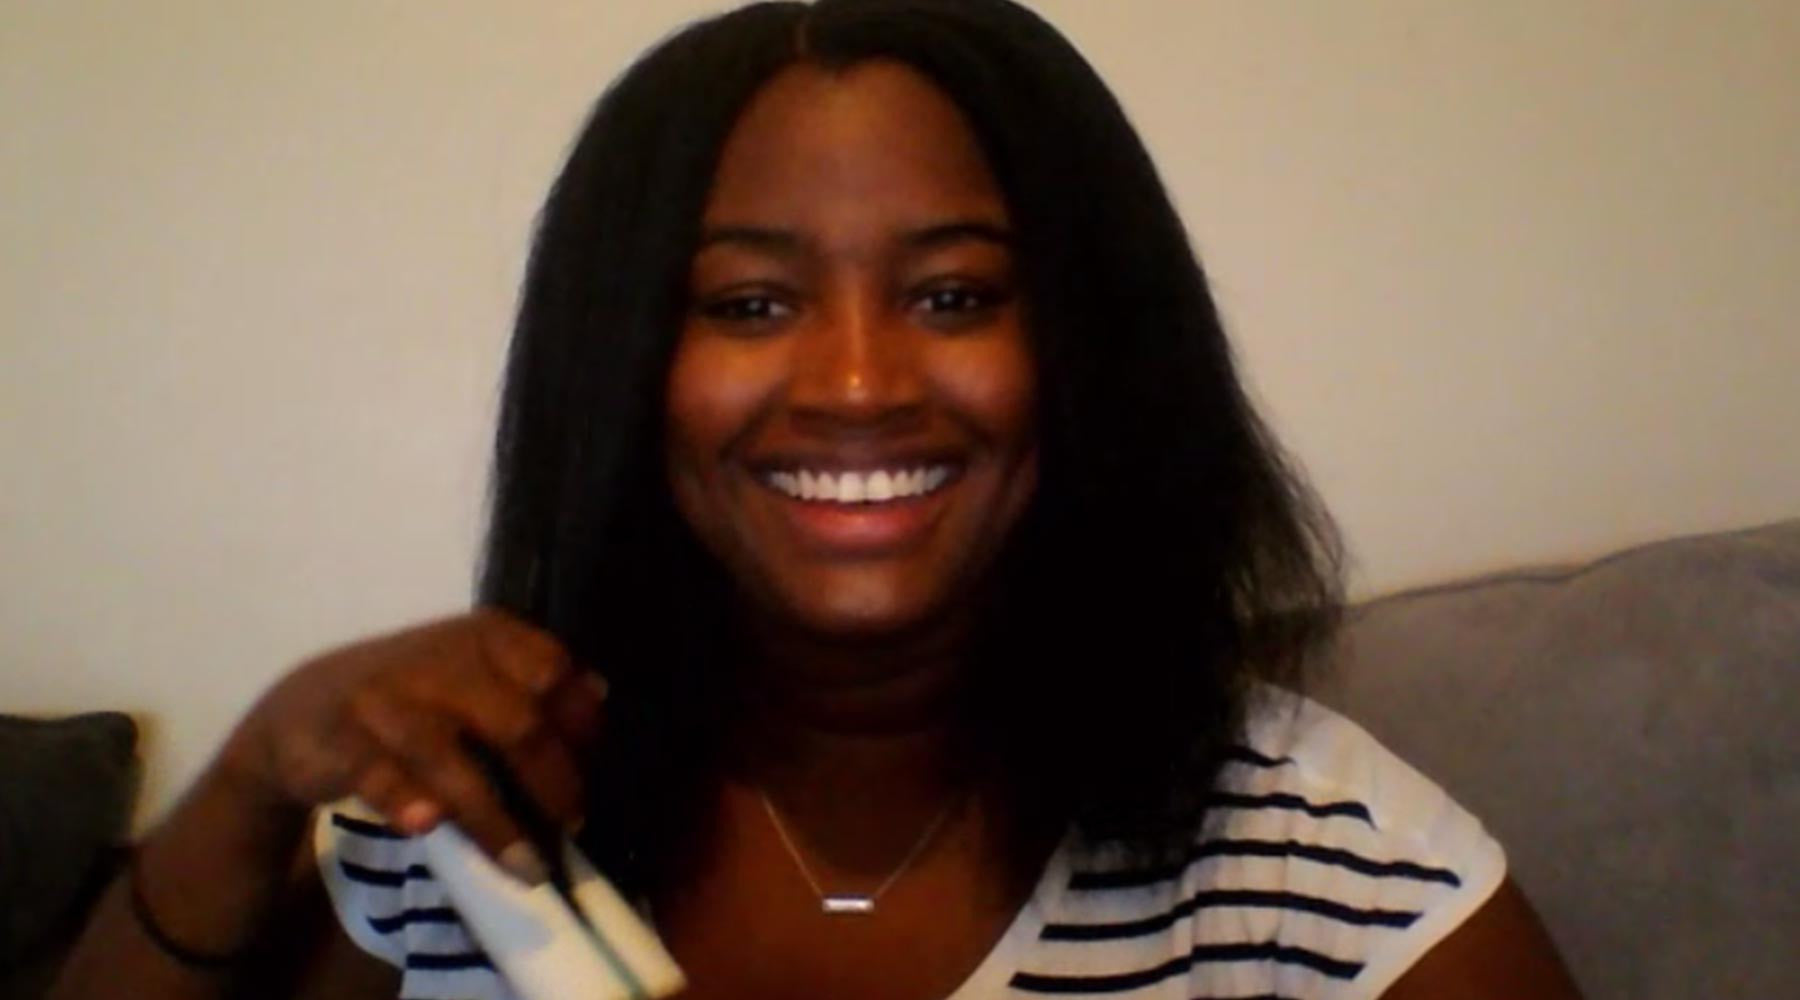 Inverse | Review & Demo from Latoya with her straight hair